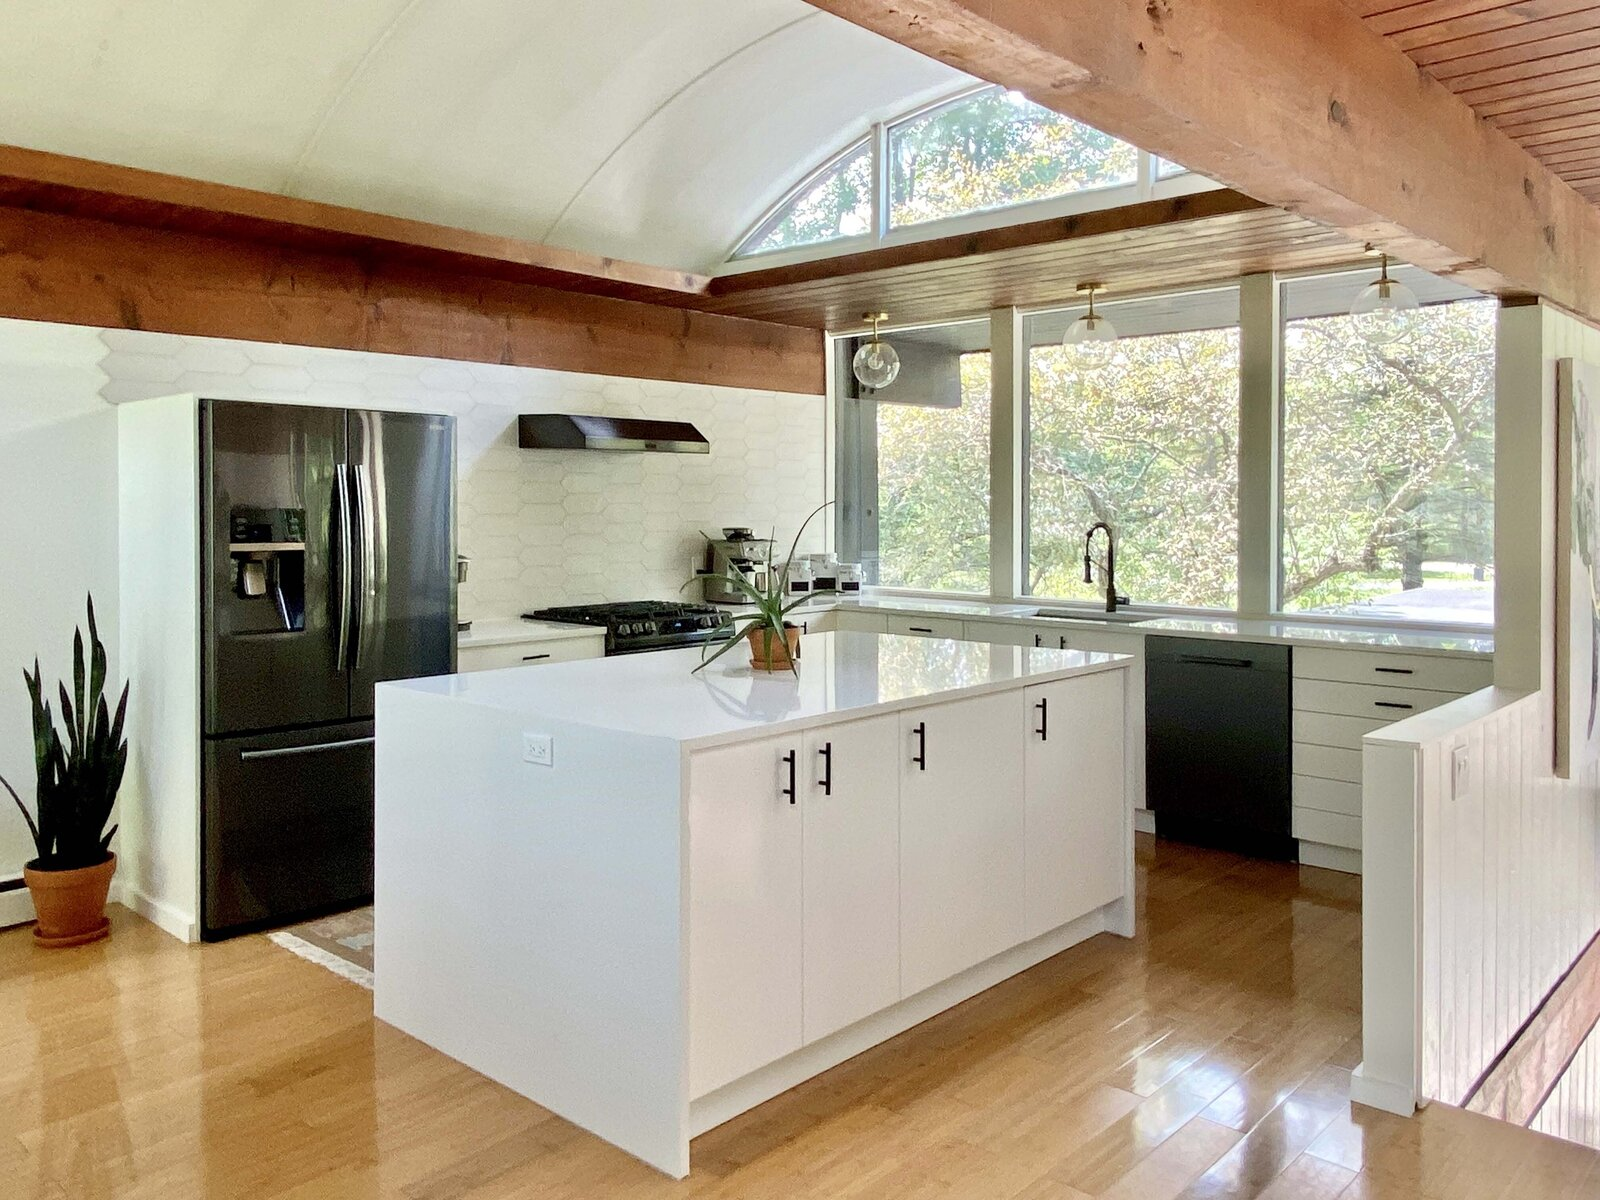 With the previous wall removed, the updated kitchen makes room for a central island overlooking the dining area and staircase landing. The same full-width window overlooks the front of the home and the central patio.  Photo 5 of 22 in Before & After: A Revived Midcentury in Wisconsin With Barrel-Vaulted Ceilings Asks $550K